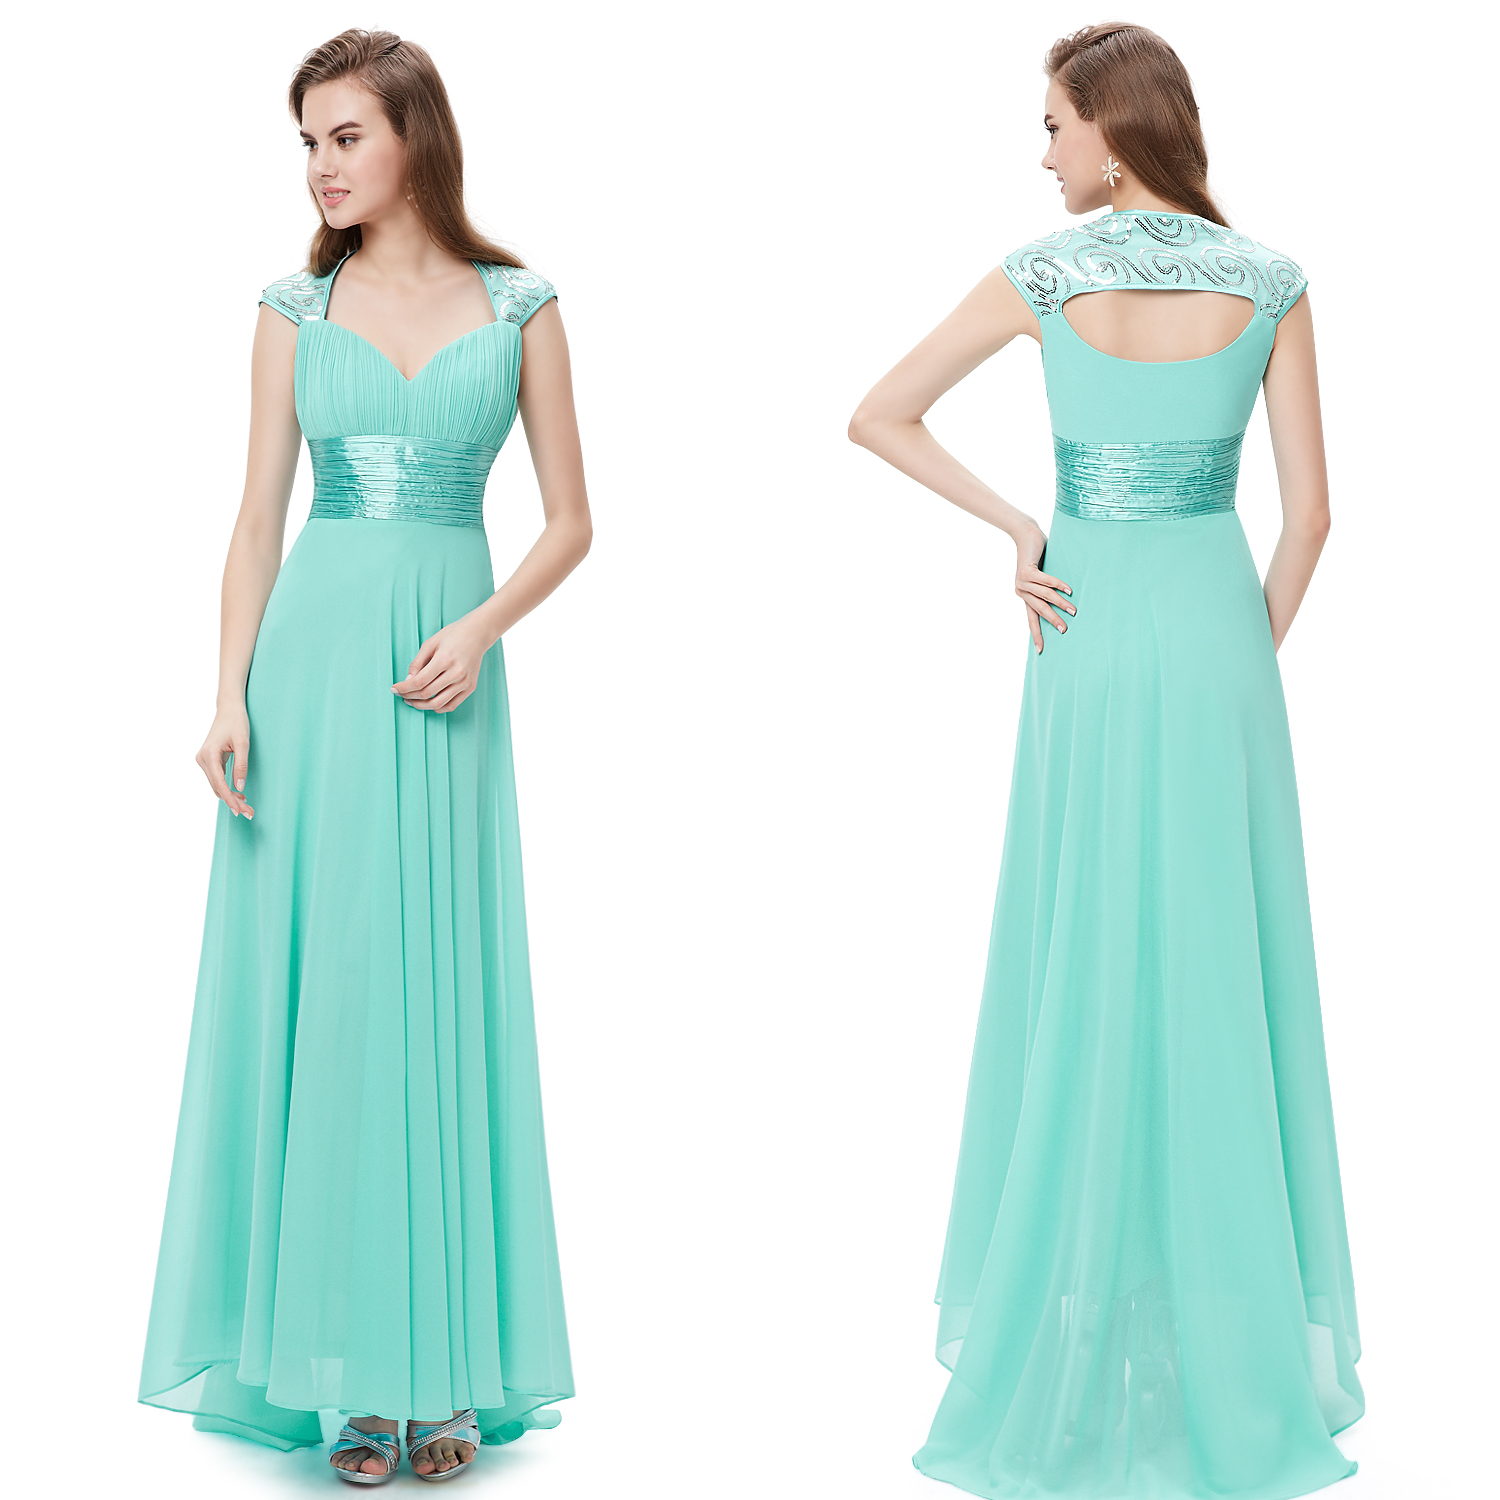 US Holiday Long Dresses Ladies Summer Beach Cocktail Wedding 09672 ...